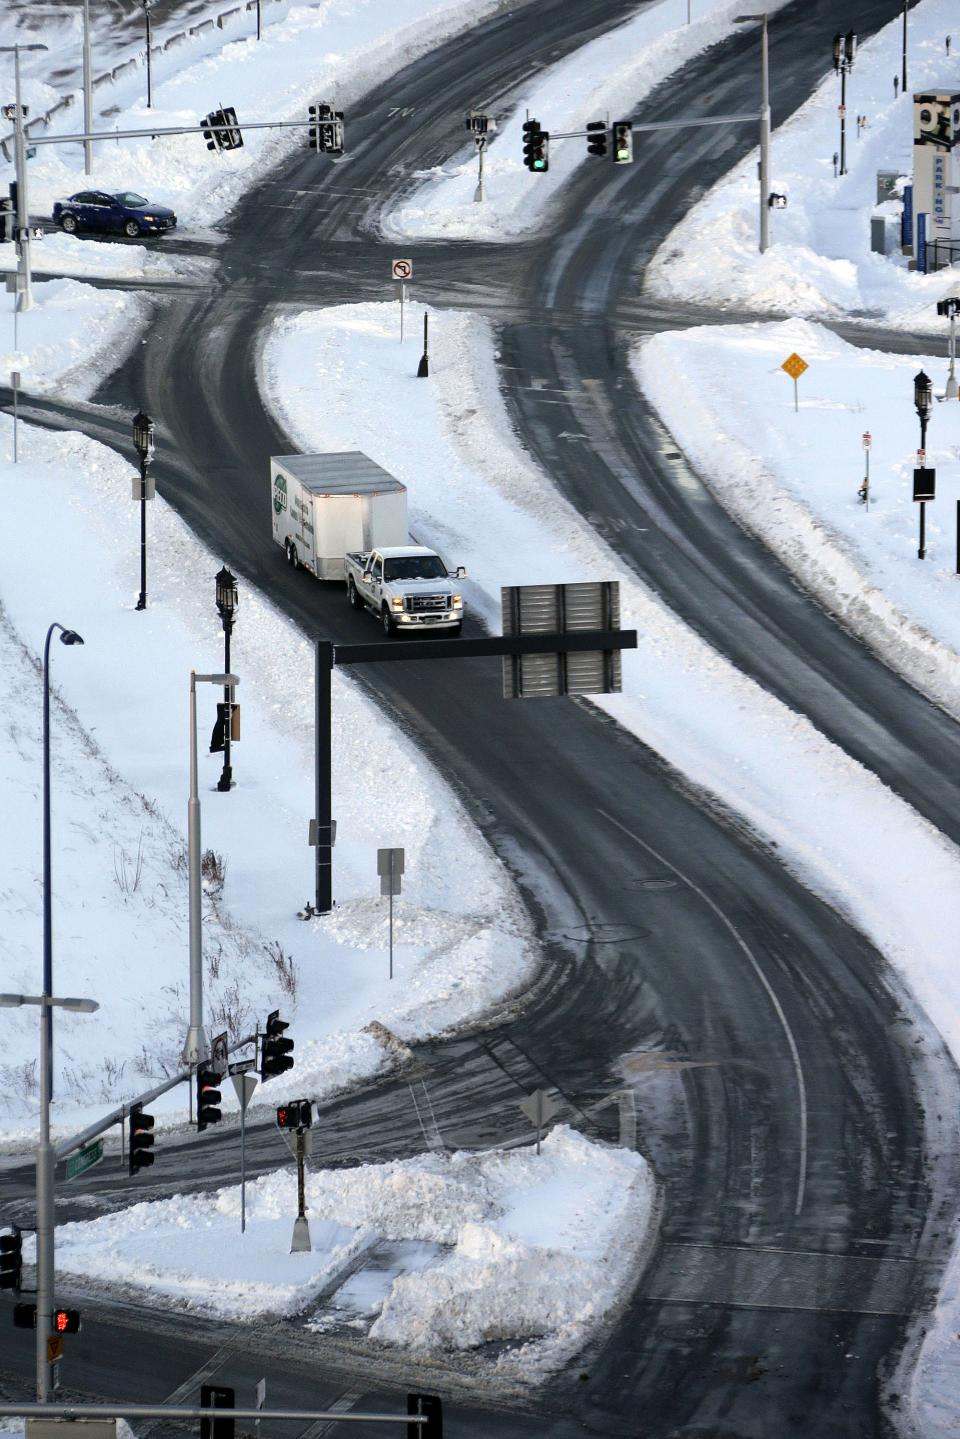 The roads in the Seaport area of Boston are clear and open early Sunday morning, Feb. 10, 2013. A snow storm dumped more than two-feet of snow in the area Friday night and Saturday. (AP Photo/Gene J. Puskar)